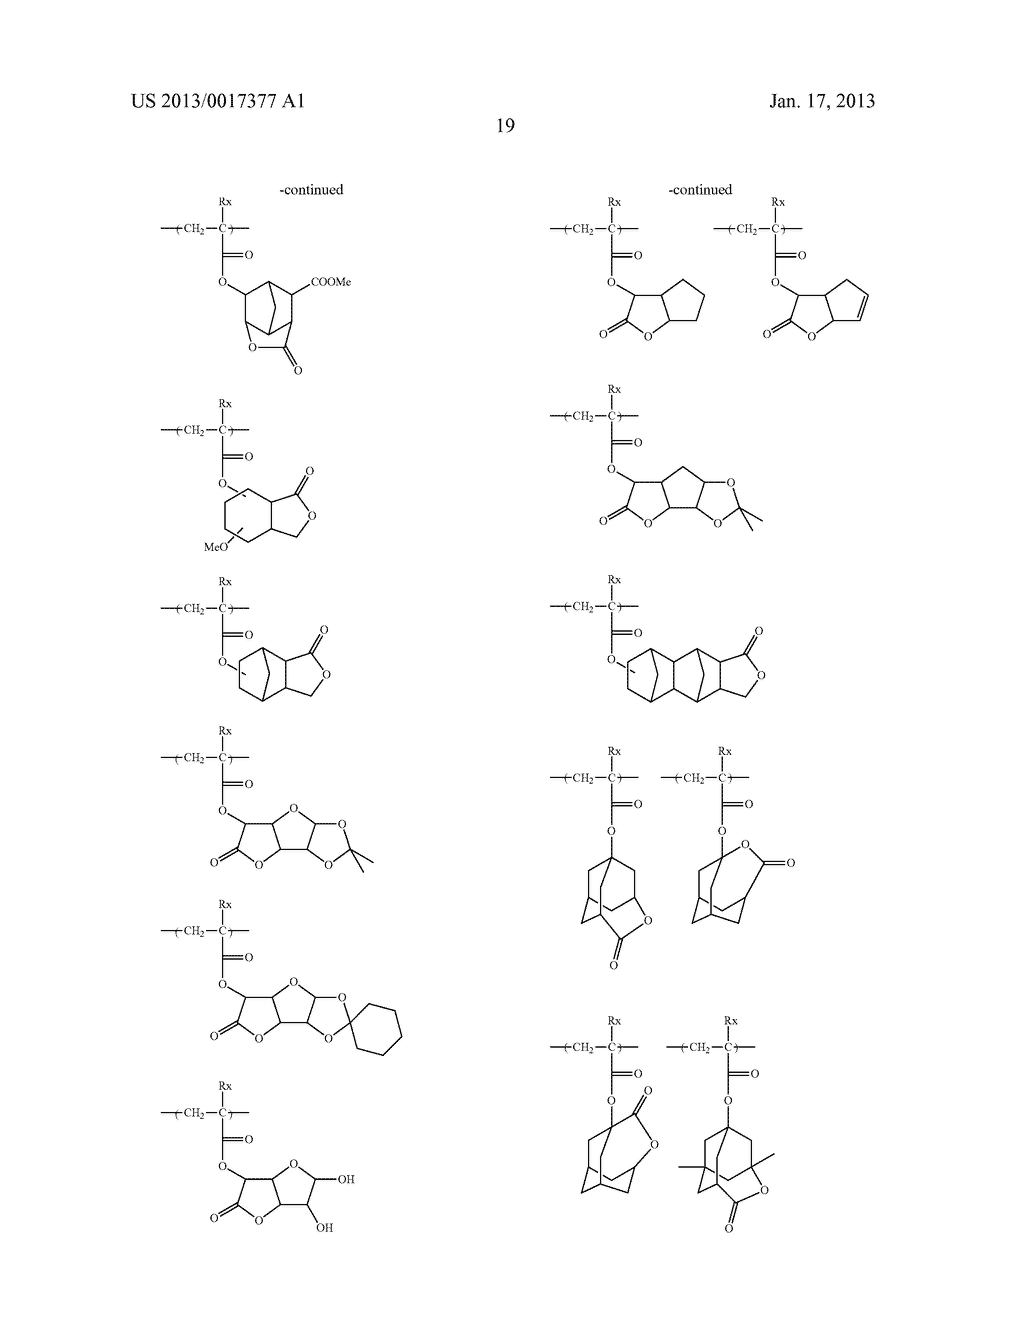 ACTINIC-RAY- OR RADIATION-SENSITIVE RESIN COMPOSITION AND METHOD OF     FORMING PATTERN USING THE SAMEAANM Kataoka; ShoheiAACI ShizuokaAACO JPAAGP Kataoka; Shohei Shizuoka JPAANM Iwato; KaoruAACI ShizuokaAACO JPAAGP Iwato; Kaoru Shizuoka JPAANM Kamimura; SouAACI ShizuokaAACO JPAAGP Kamimura; Sou Shizuoka JPAANM Tsuchihashi; ToruAACI ShizuokaAACO JPAAGP Tsuchihashi; Toru Shizuoka JPAANM Enomoto; YuichiroAACI ShizuokaAACO JPAAGP Enomoto; Yuichiro Shizuoka JPAANM Fujii; KanaAACI ShizuokaAACO JPAAGP Fujii; Kana Shizuoka JPAANM Mizutani; KazuyoshiAACI ShizuokaAACO JPAAGP Mizutani; Kazuyoshi Shizuoka JPAANM Tarutani; ShinjiAACI ShizuokaAACO JPAAGP Tarutani; Shinji Shizuoka JPAANM Kato; KeitaAACI ShizuokaAACO JPAAGP Kato; Keita Shizuoka JP - diagram, schematic, and image 20